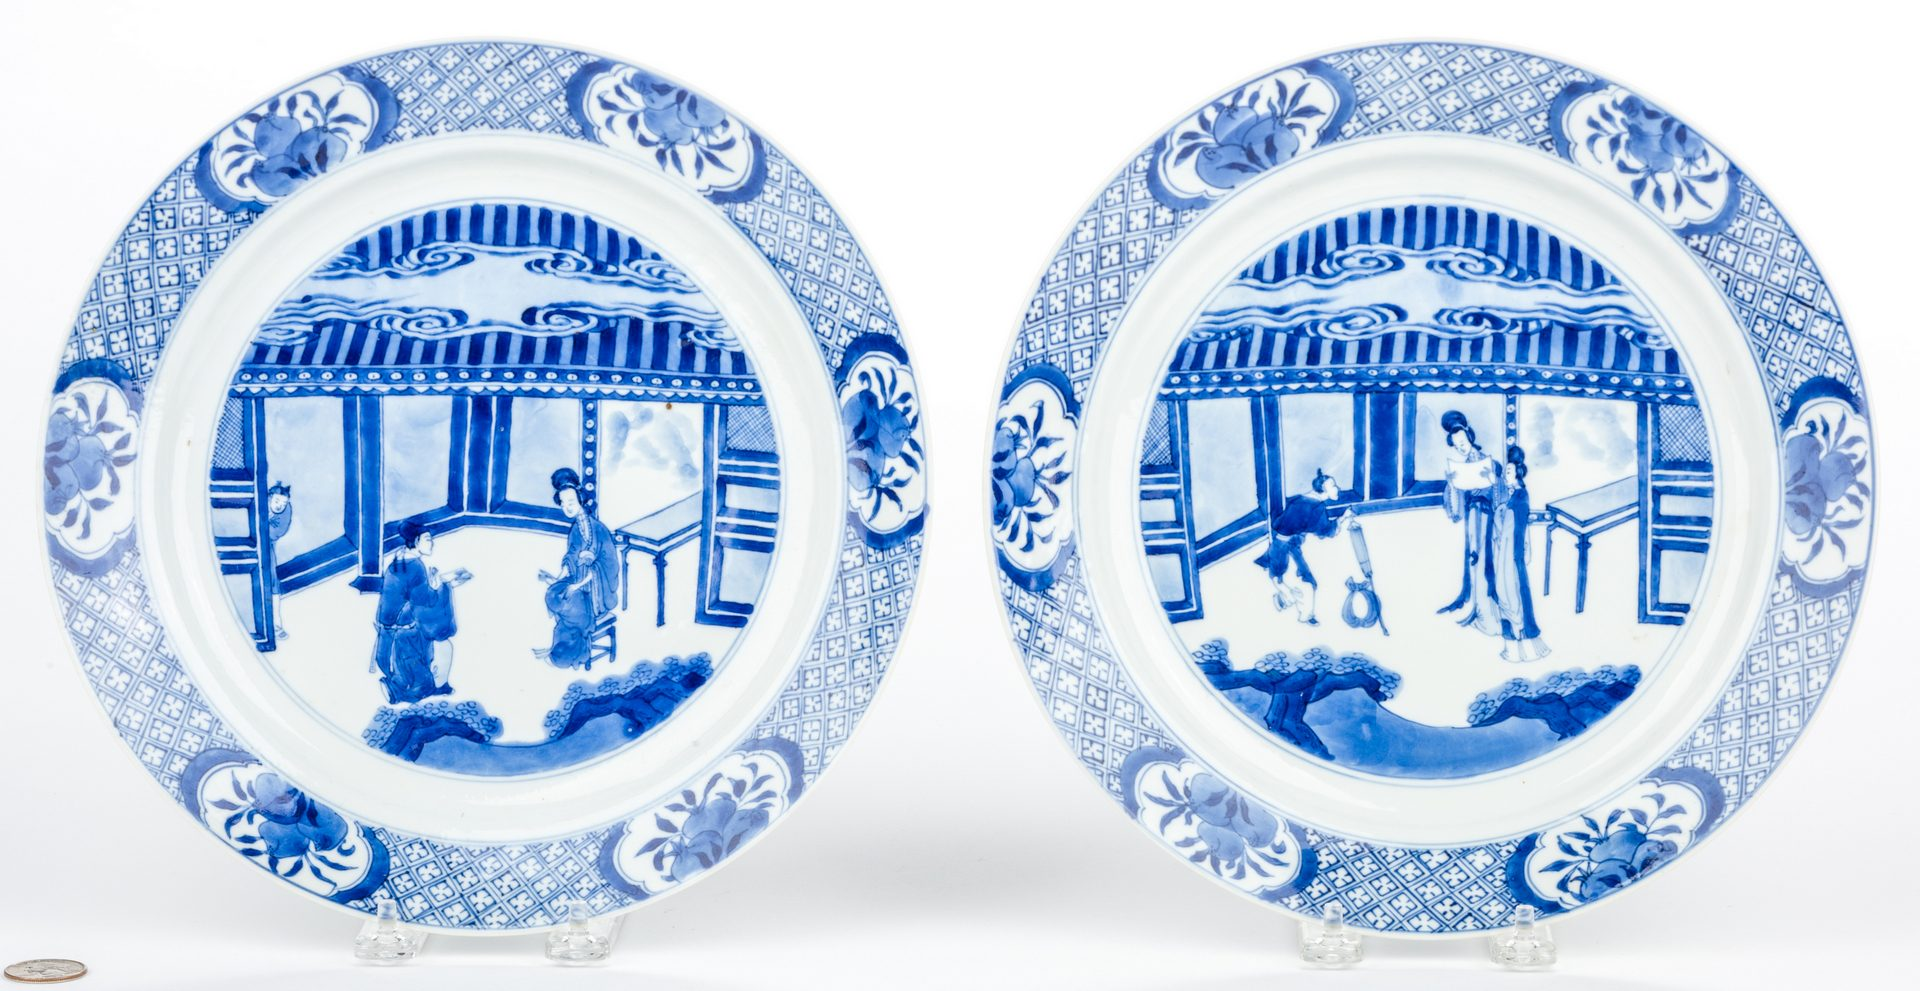 Lot 21: Qing Dynasty Blue & White Porcelain Plates